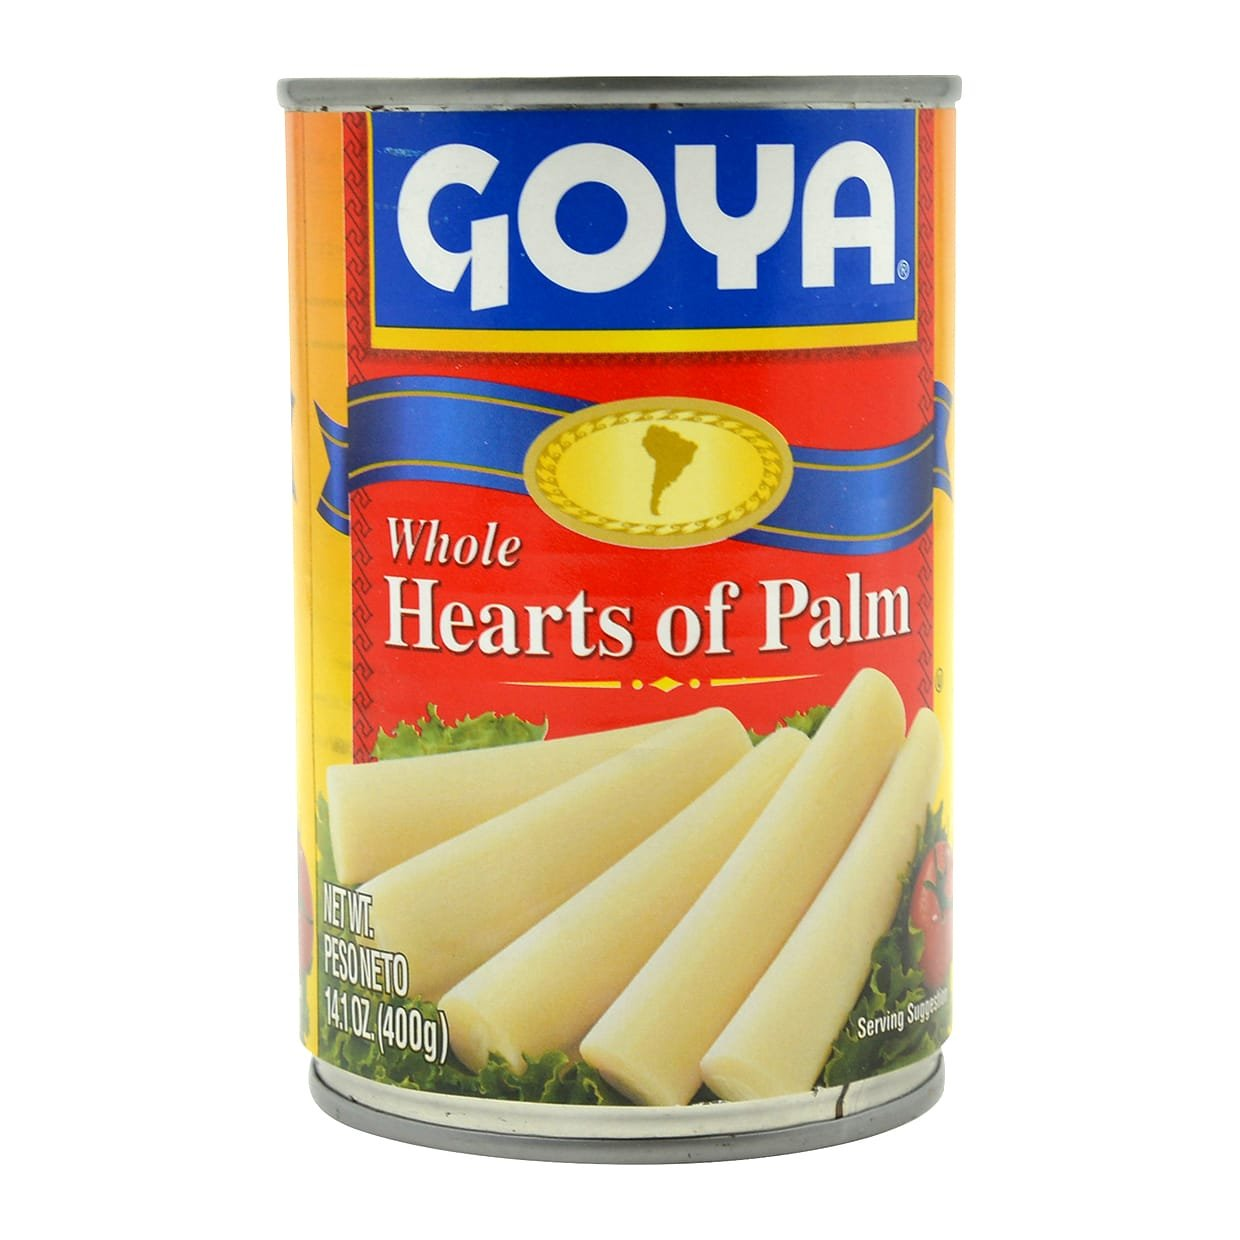 Goya Whole Hearts Of Palm, 14.1-Ounce Unit (Pack of 6): Amazon.com: Grocery & Gourmet Food